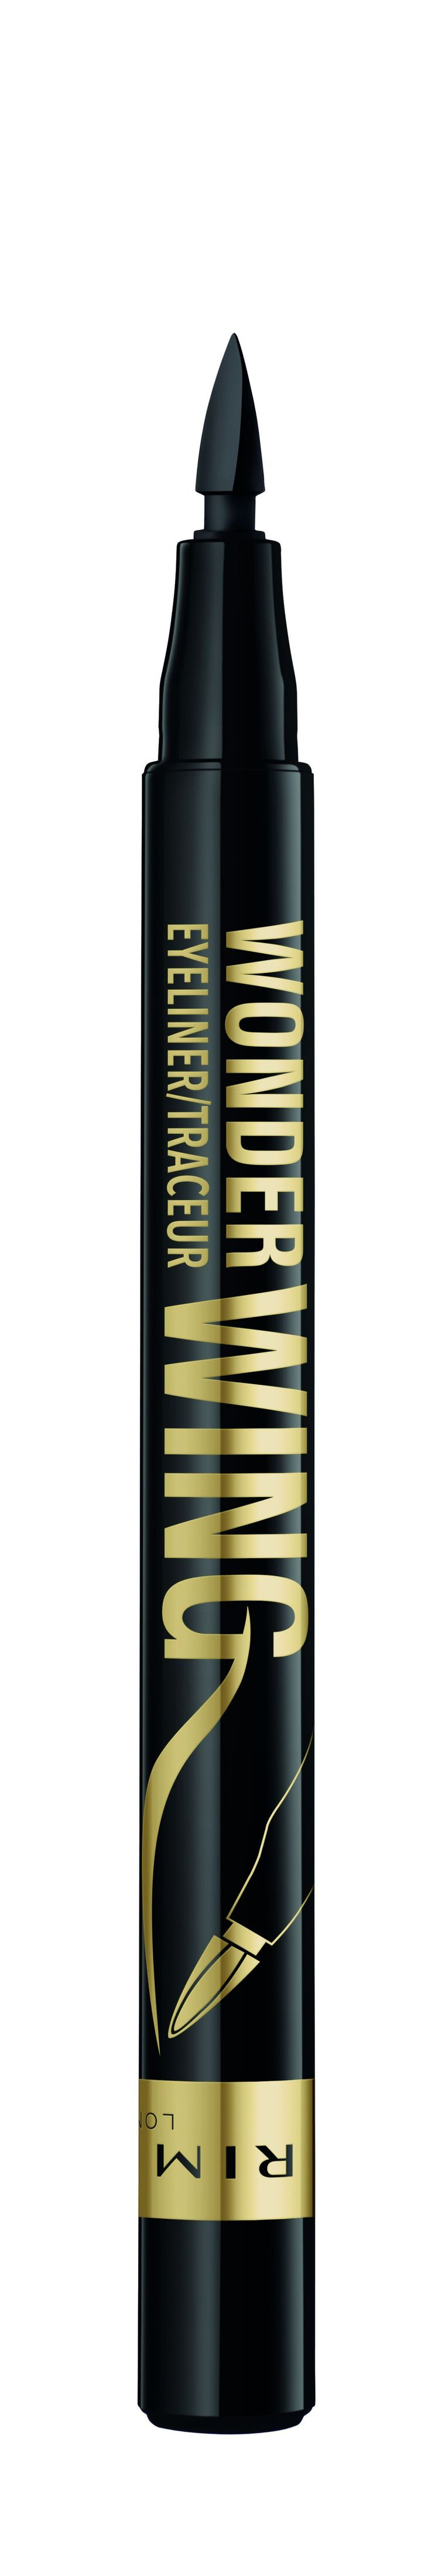 The liquid liner for the cat-eye inept. Use the pigmented felt tip to line your eyes as usual, then slant the pen ever so slightly to stamp on a precise wing.  Rimmel London Wonder Wing Eyeliner Stamp, $6.99, available January 2018 at mass retailers.